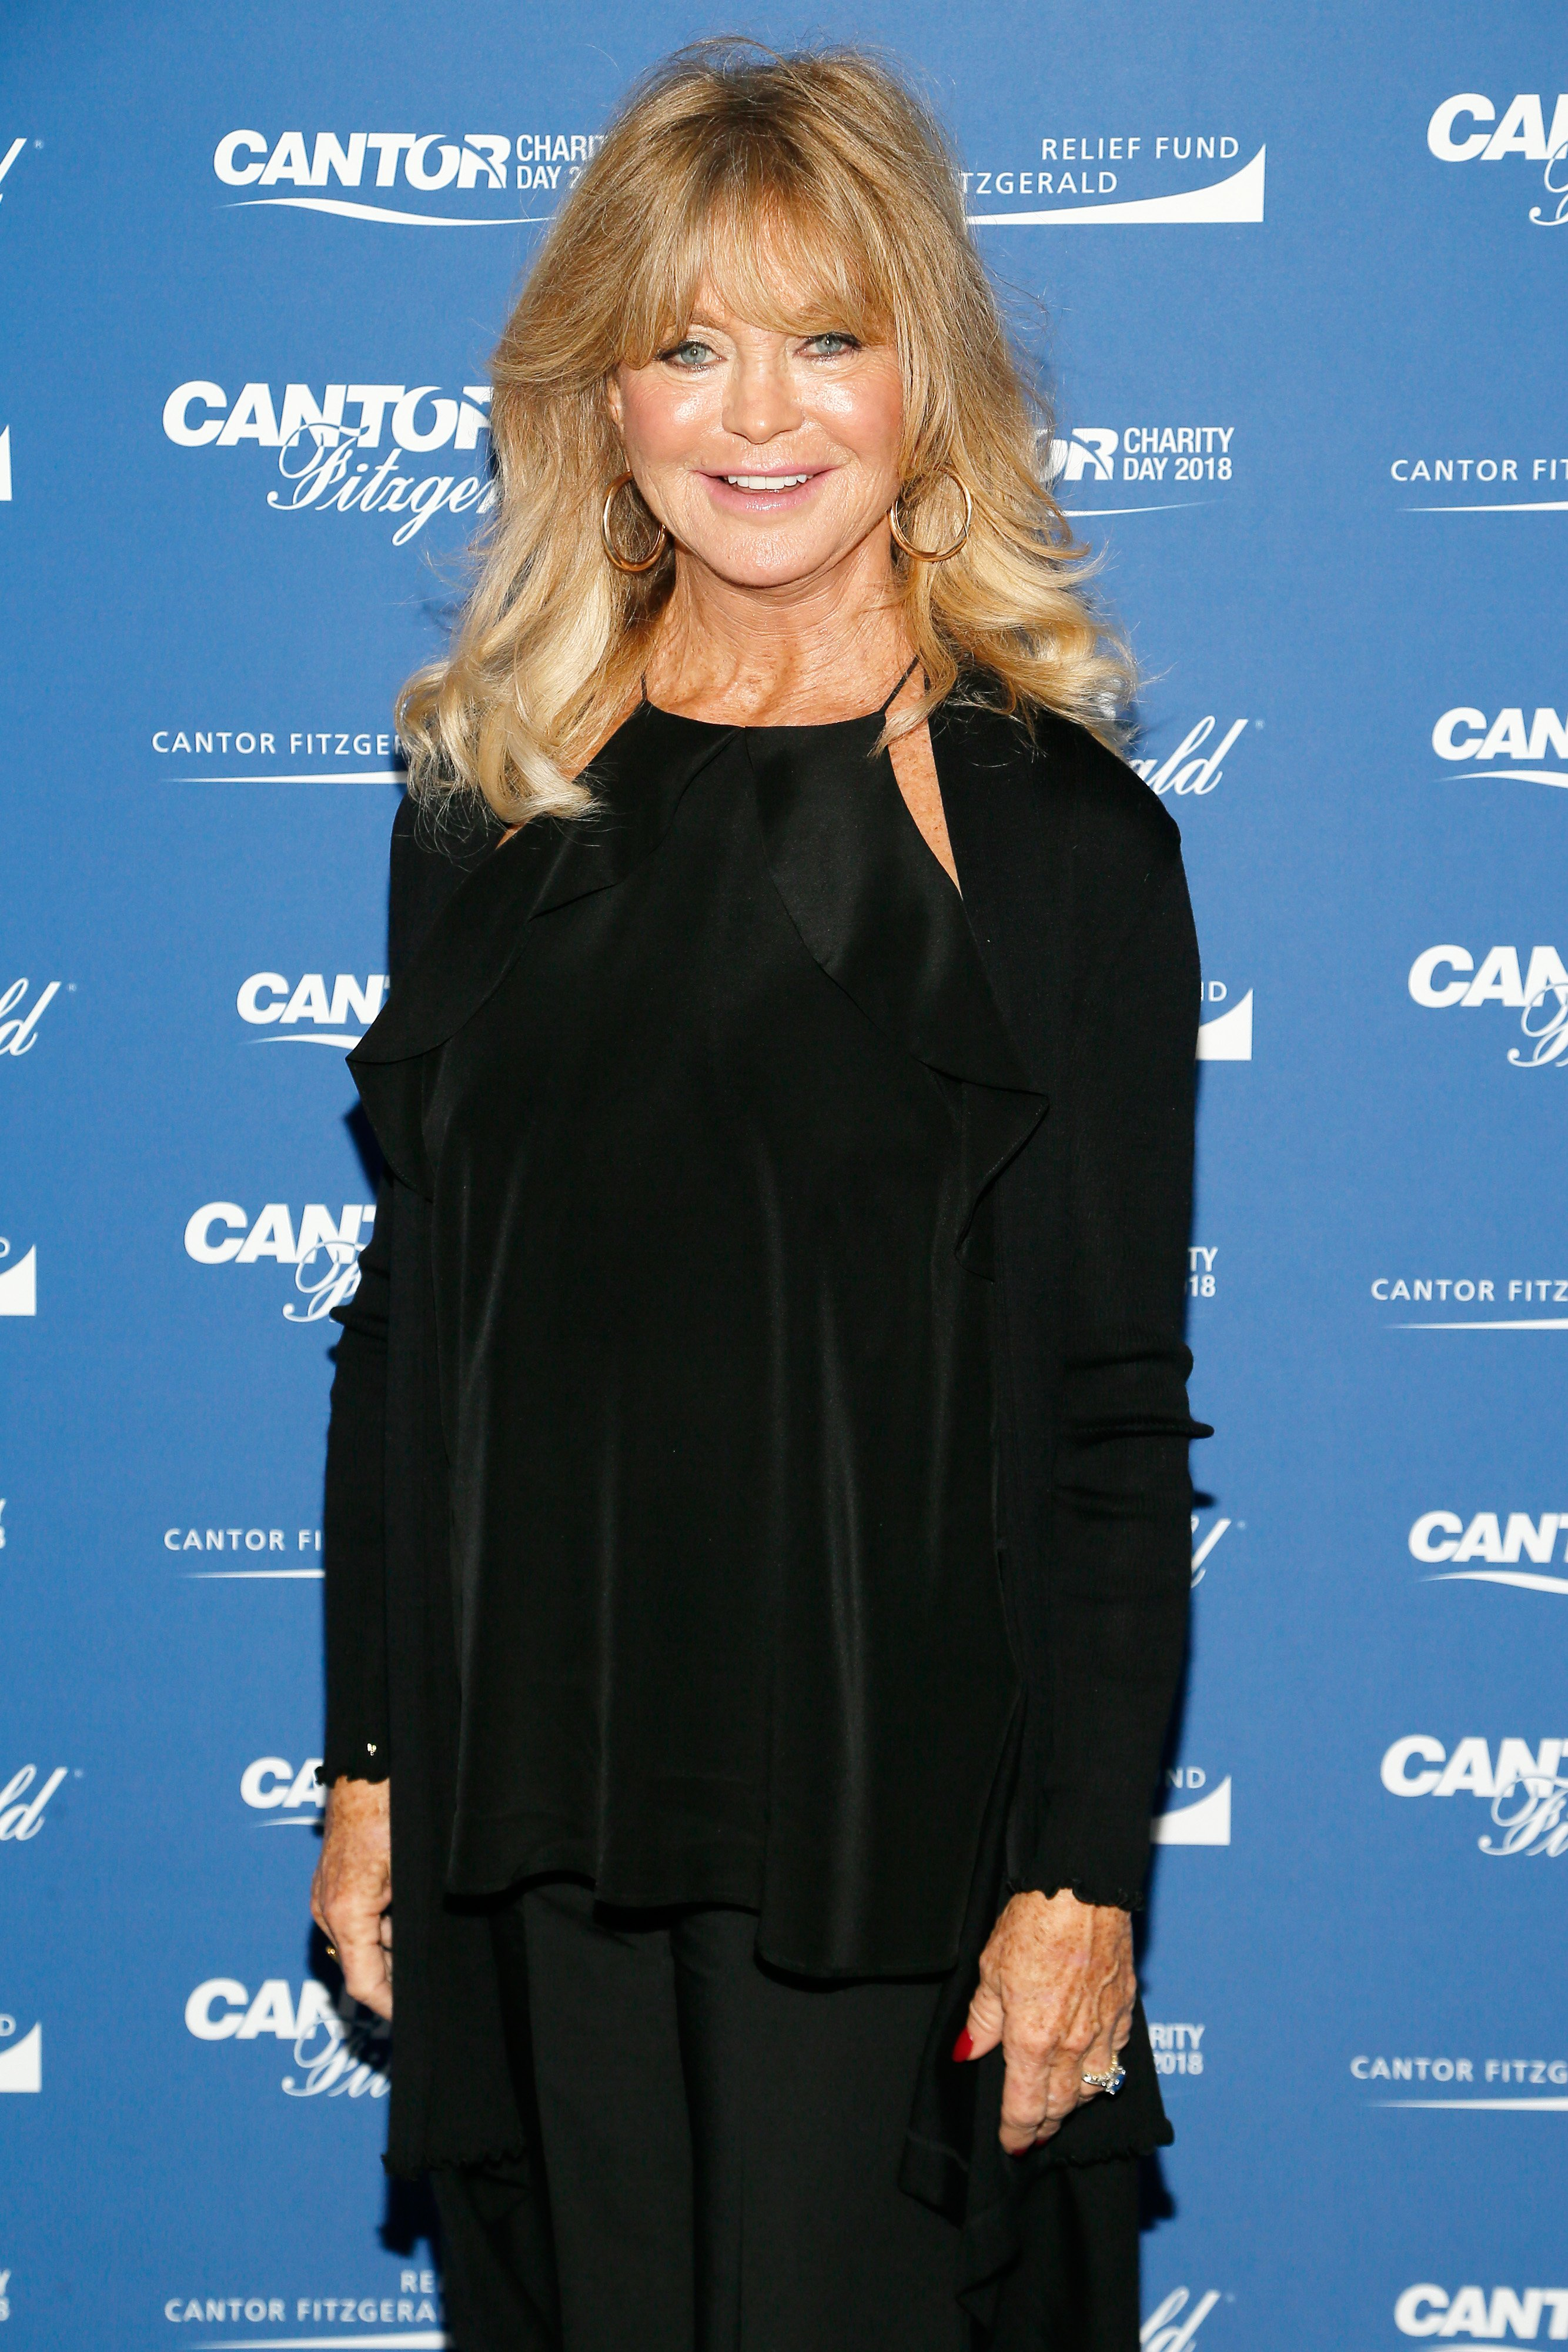 Goldie Hawn attends the Annual Charity Day hosted by Cantor Fitzgerald, BGC and GFI at Cantor Fitzgerald on September 11, 2018 in New York City.  Source: Getty Images